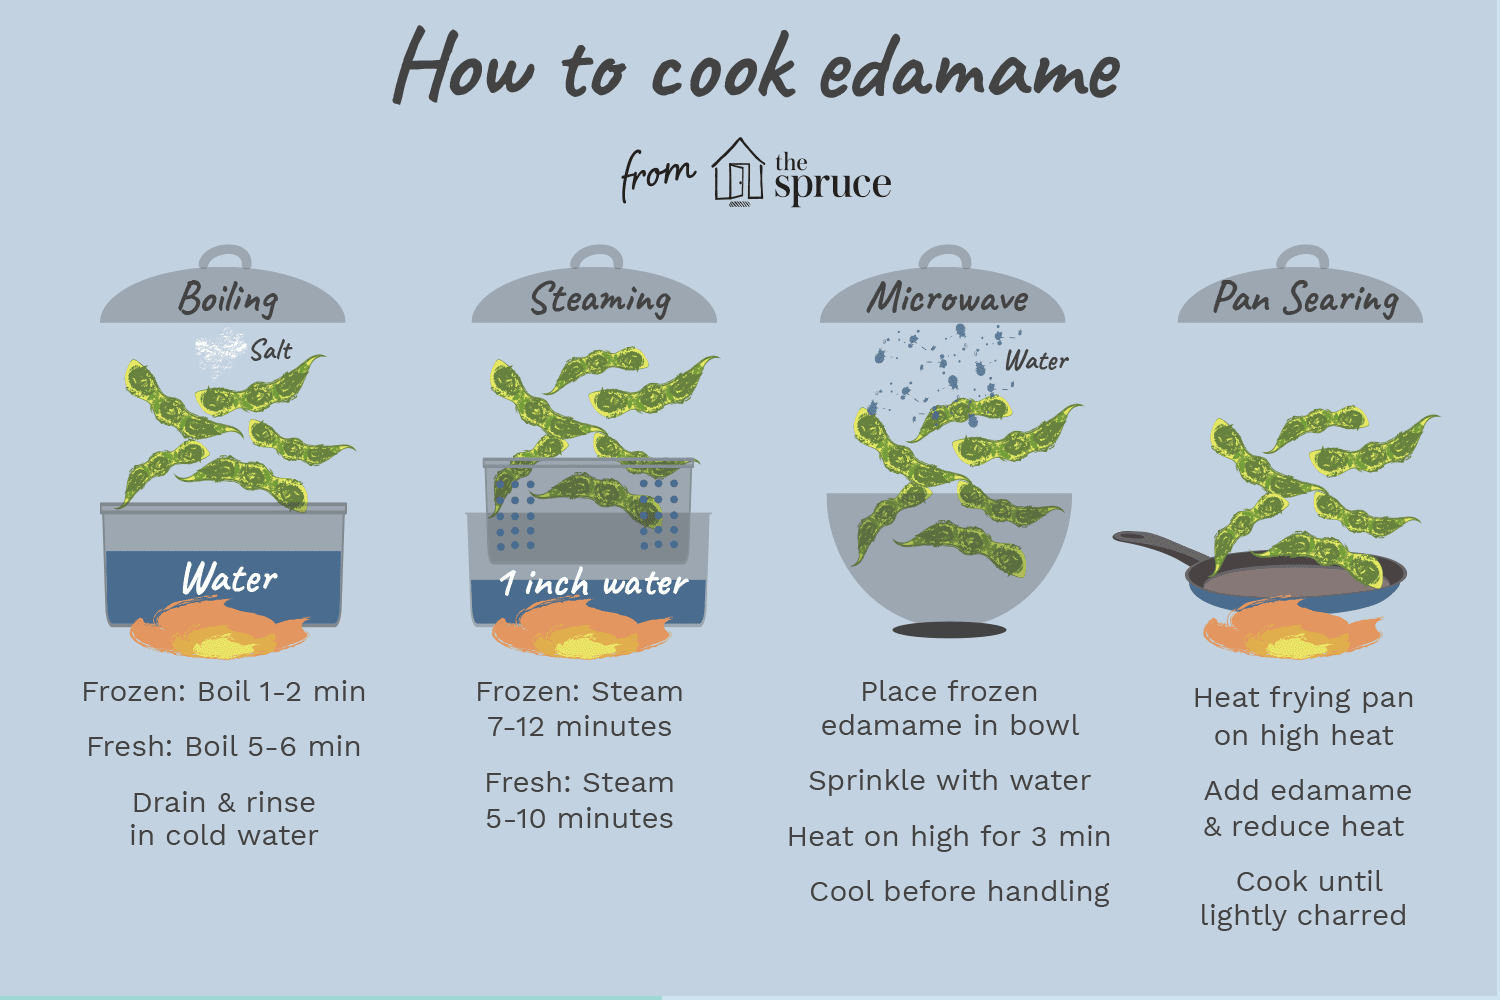 How to cook edamame illustration